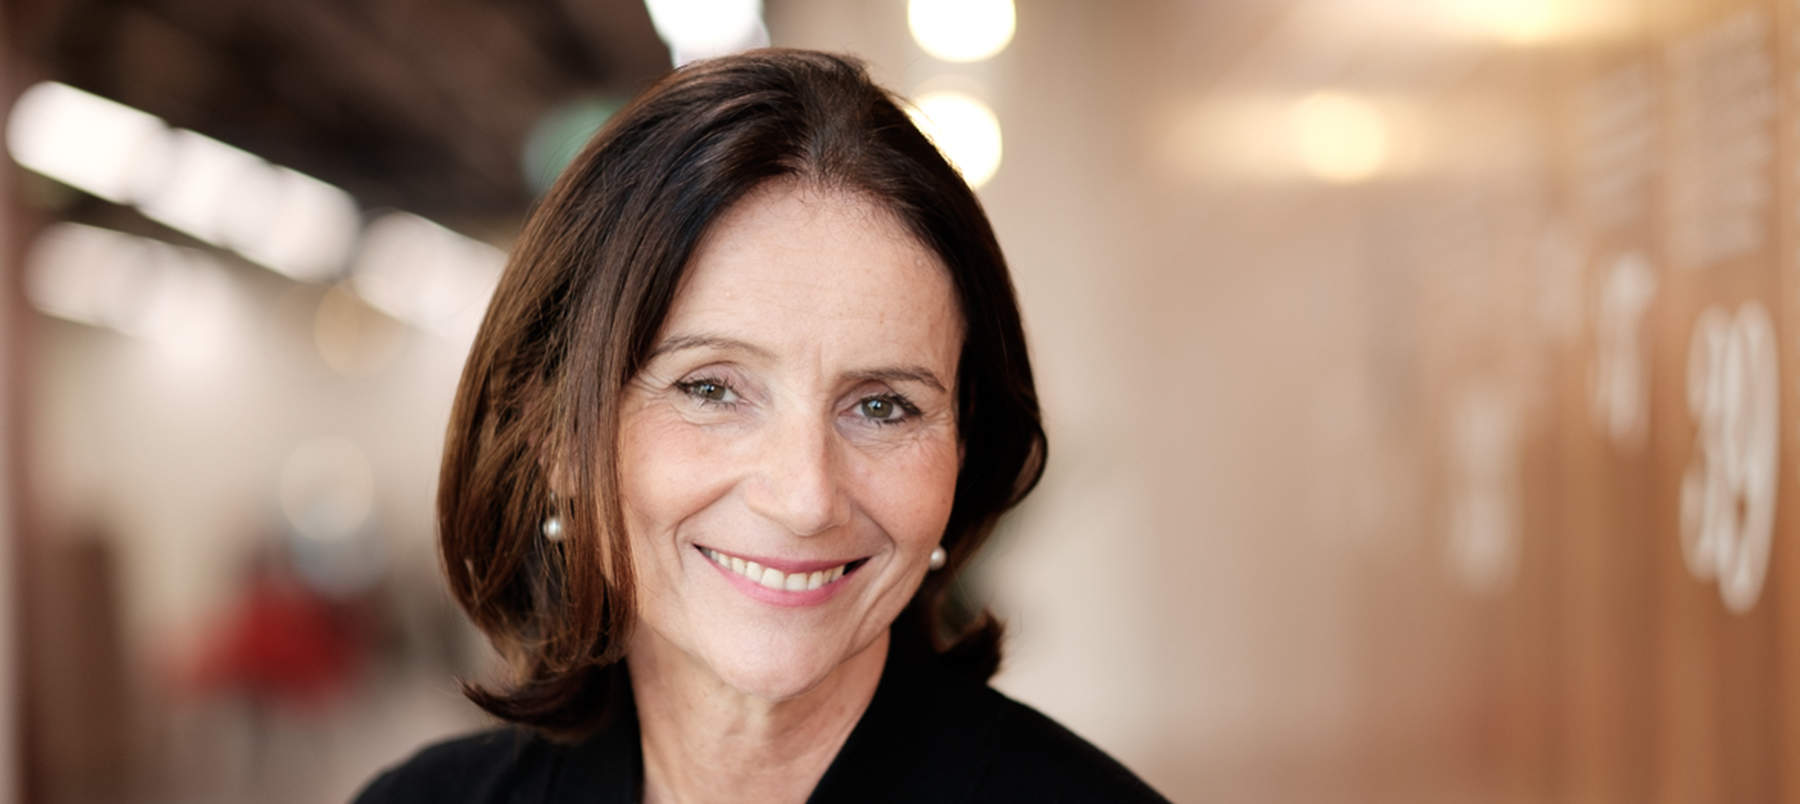 CBI, Carolyn Fairbairn, gender pay gap